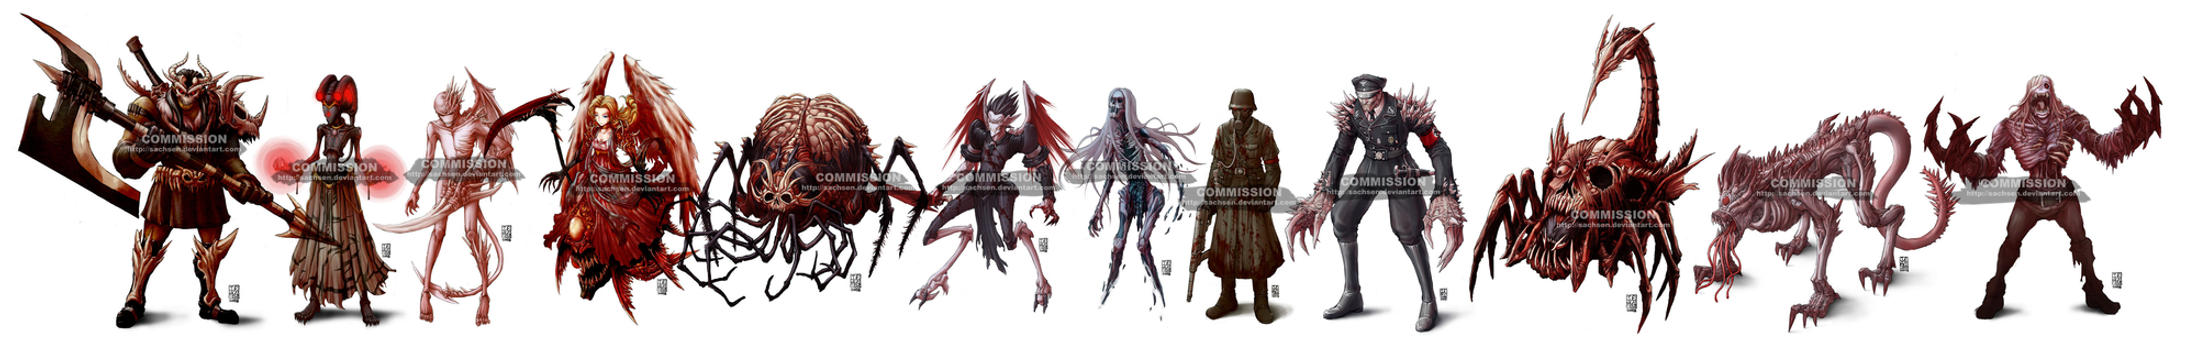 COMMISH monsters1 by sachsen